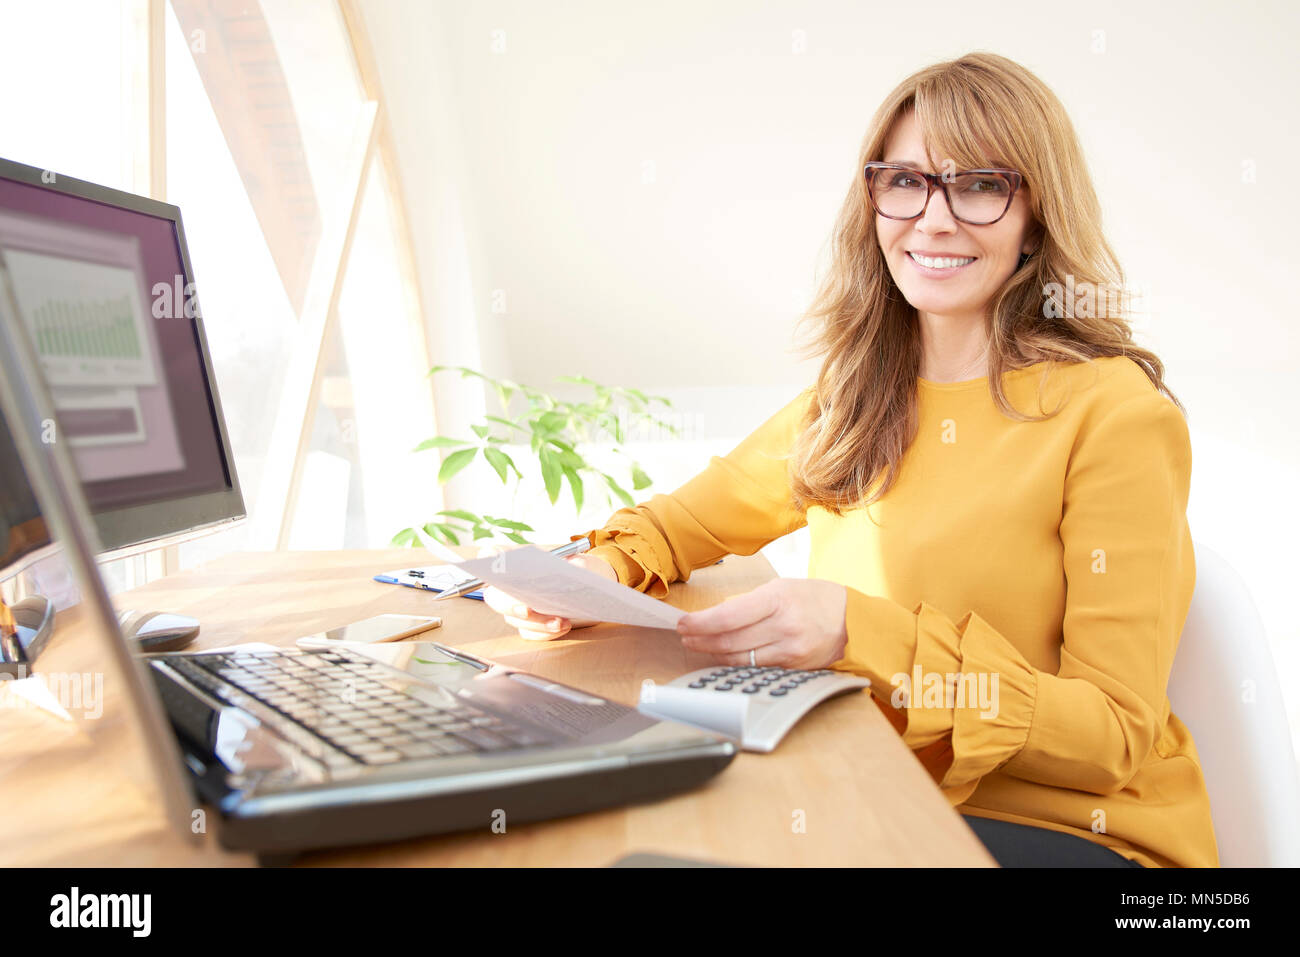 Middle aged executive businesswoman sitting at computer and laptop and doing some paperwork. Home office. - Stock Image